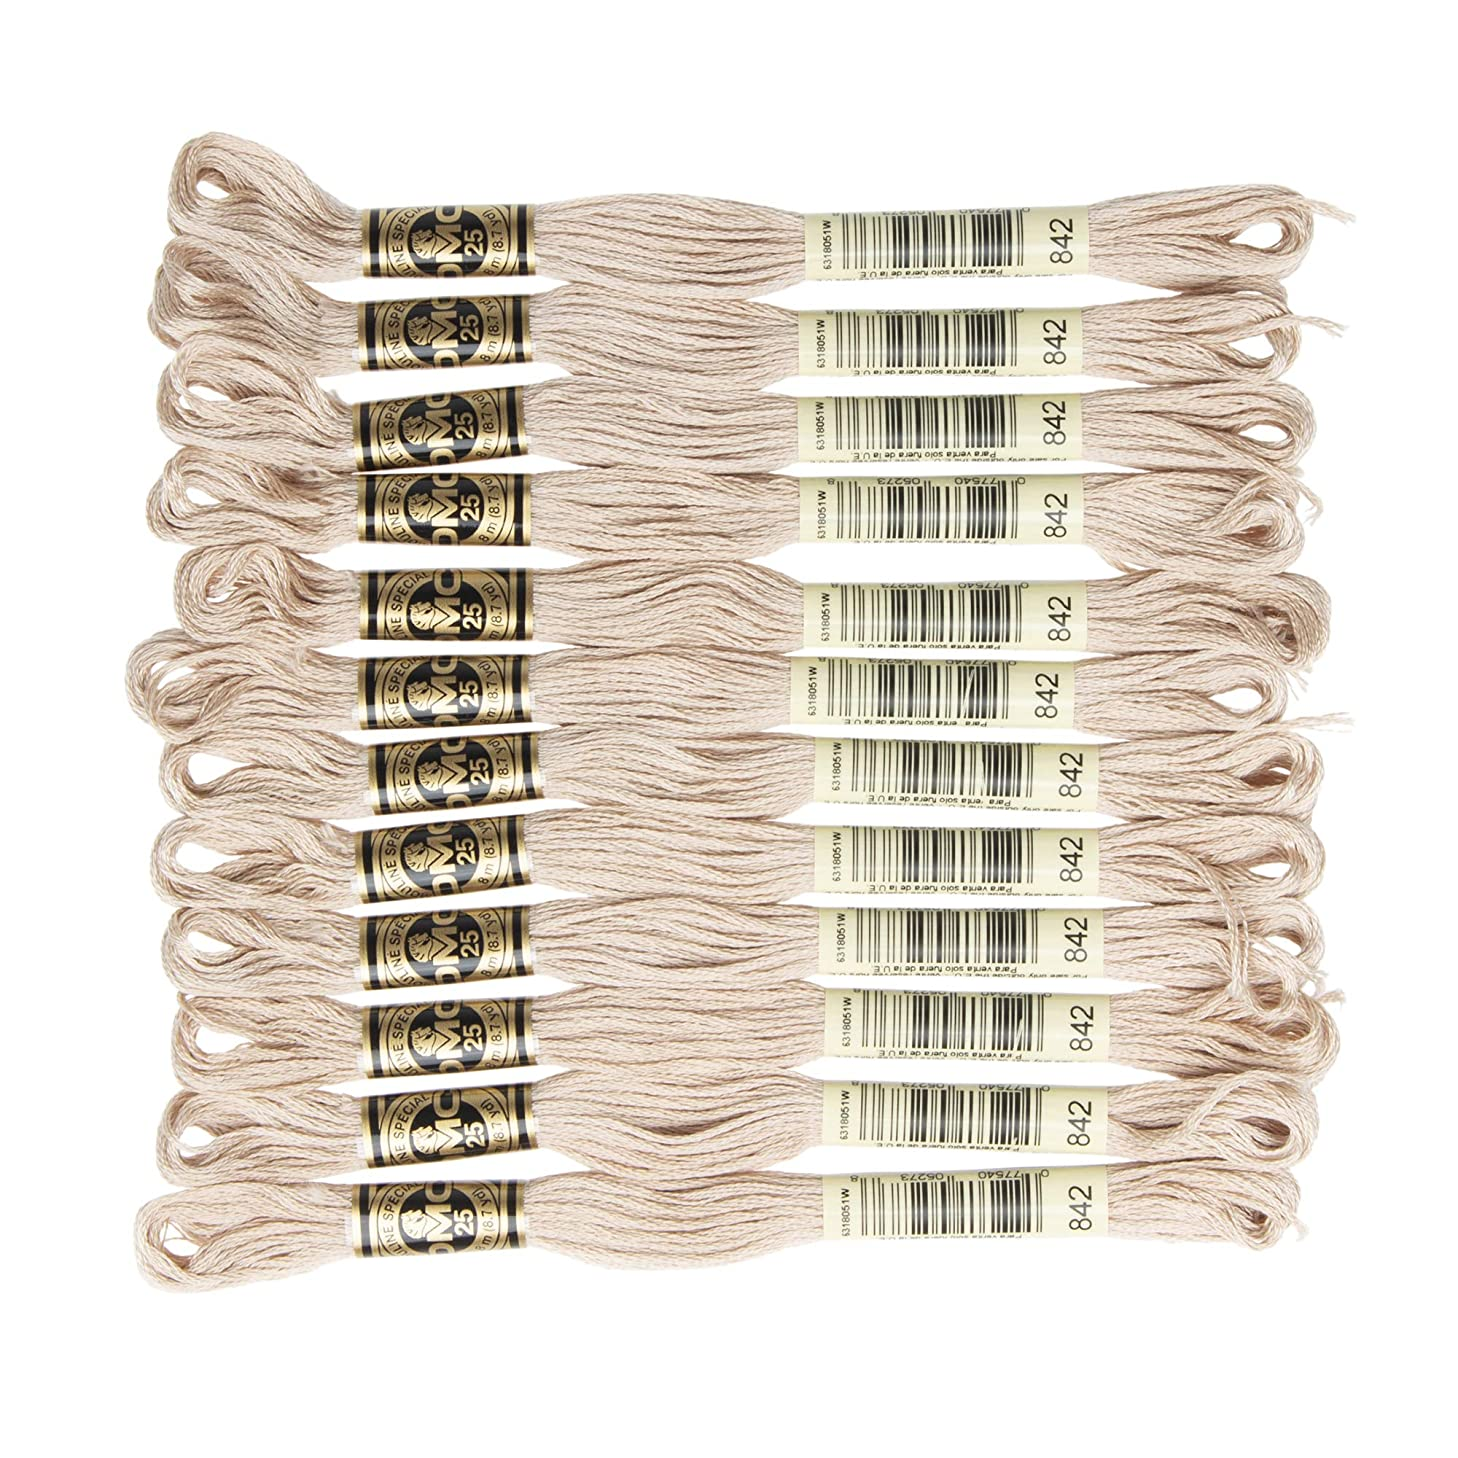 DMC 6-Strand Embroidery Cotton Floss, Very Light Beige Brown , Pack of 12